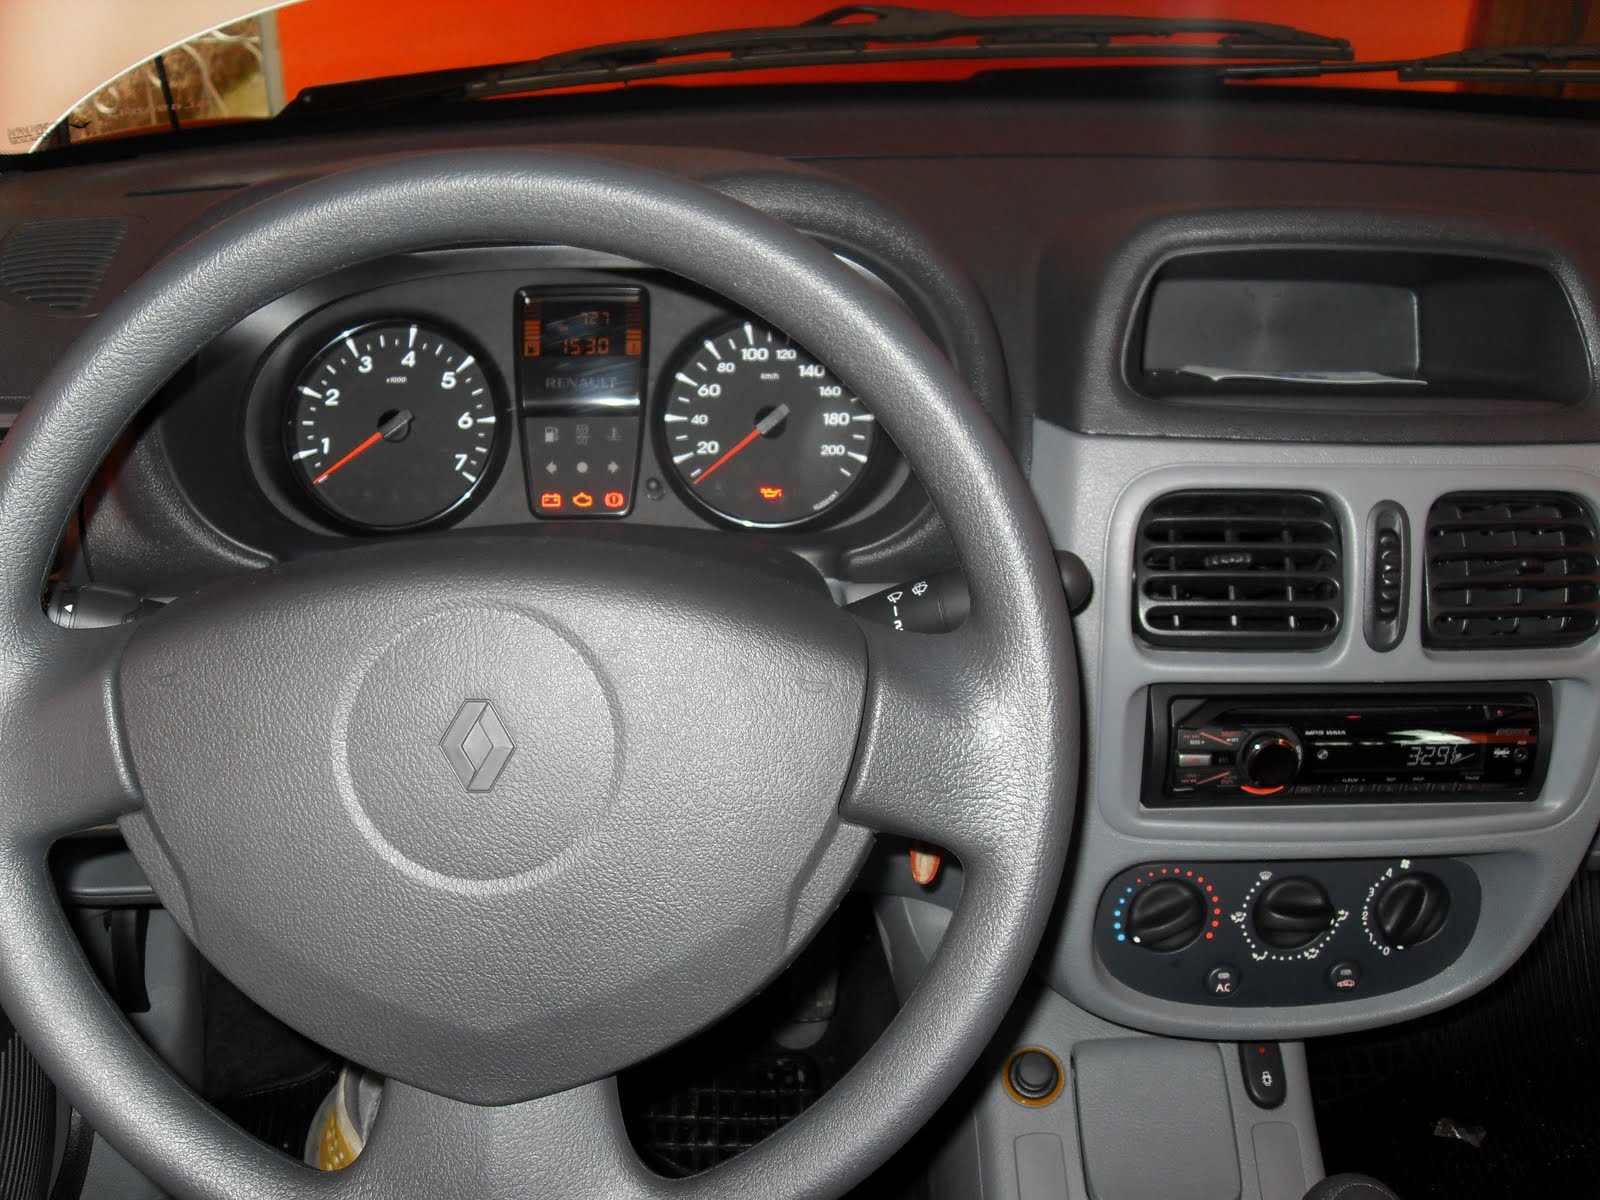 Renault Clio Cd Player Wiring Diagram : Sony radio cd player bing images